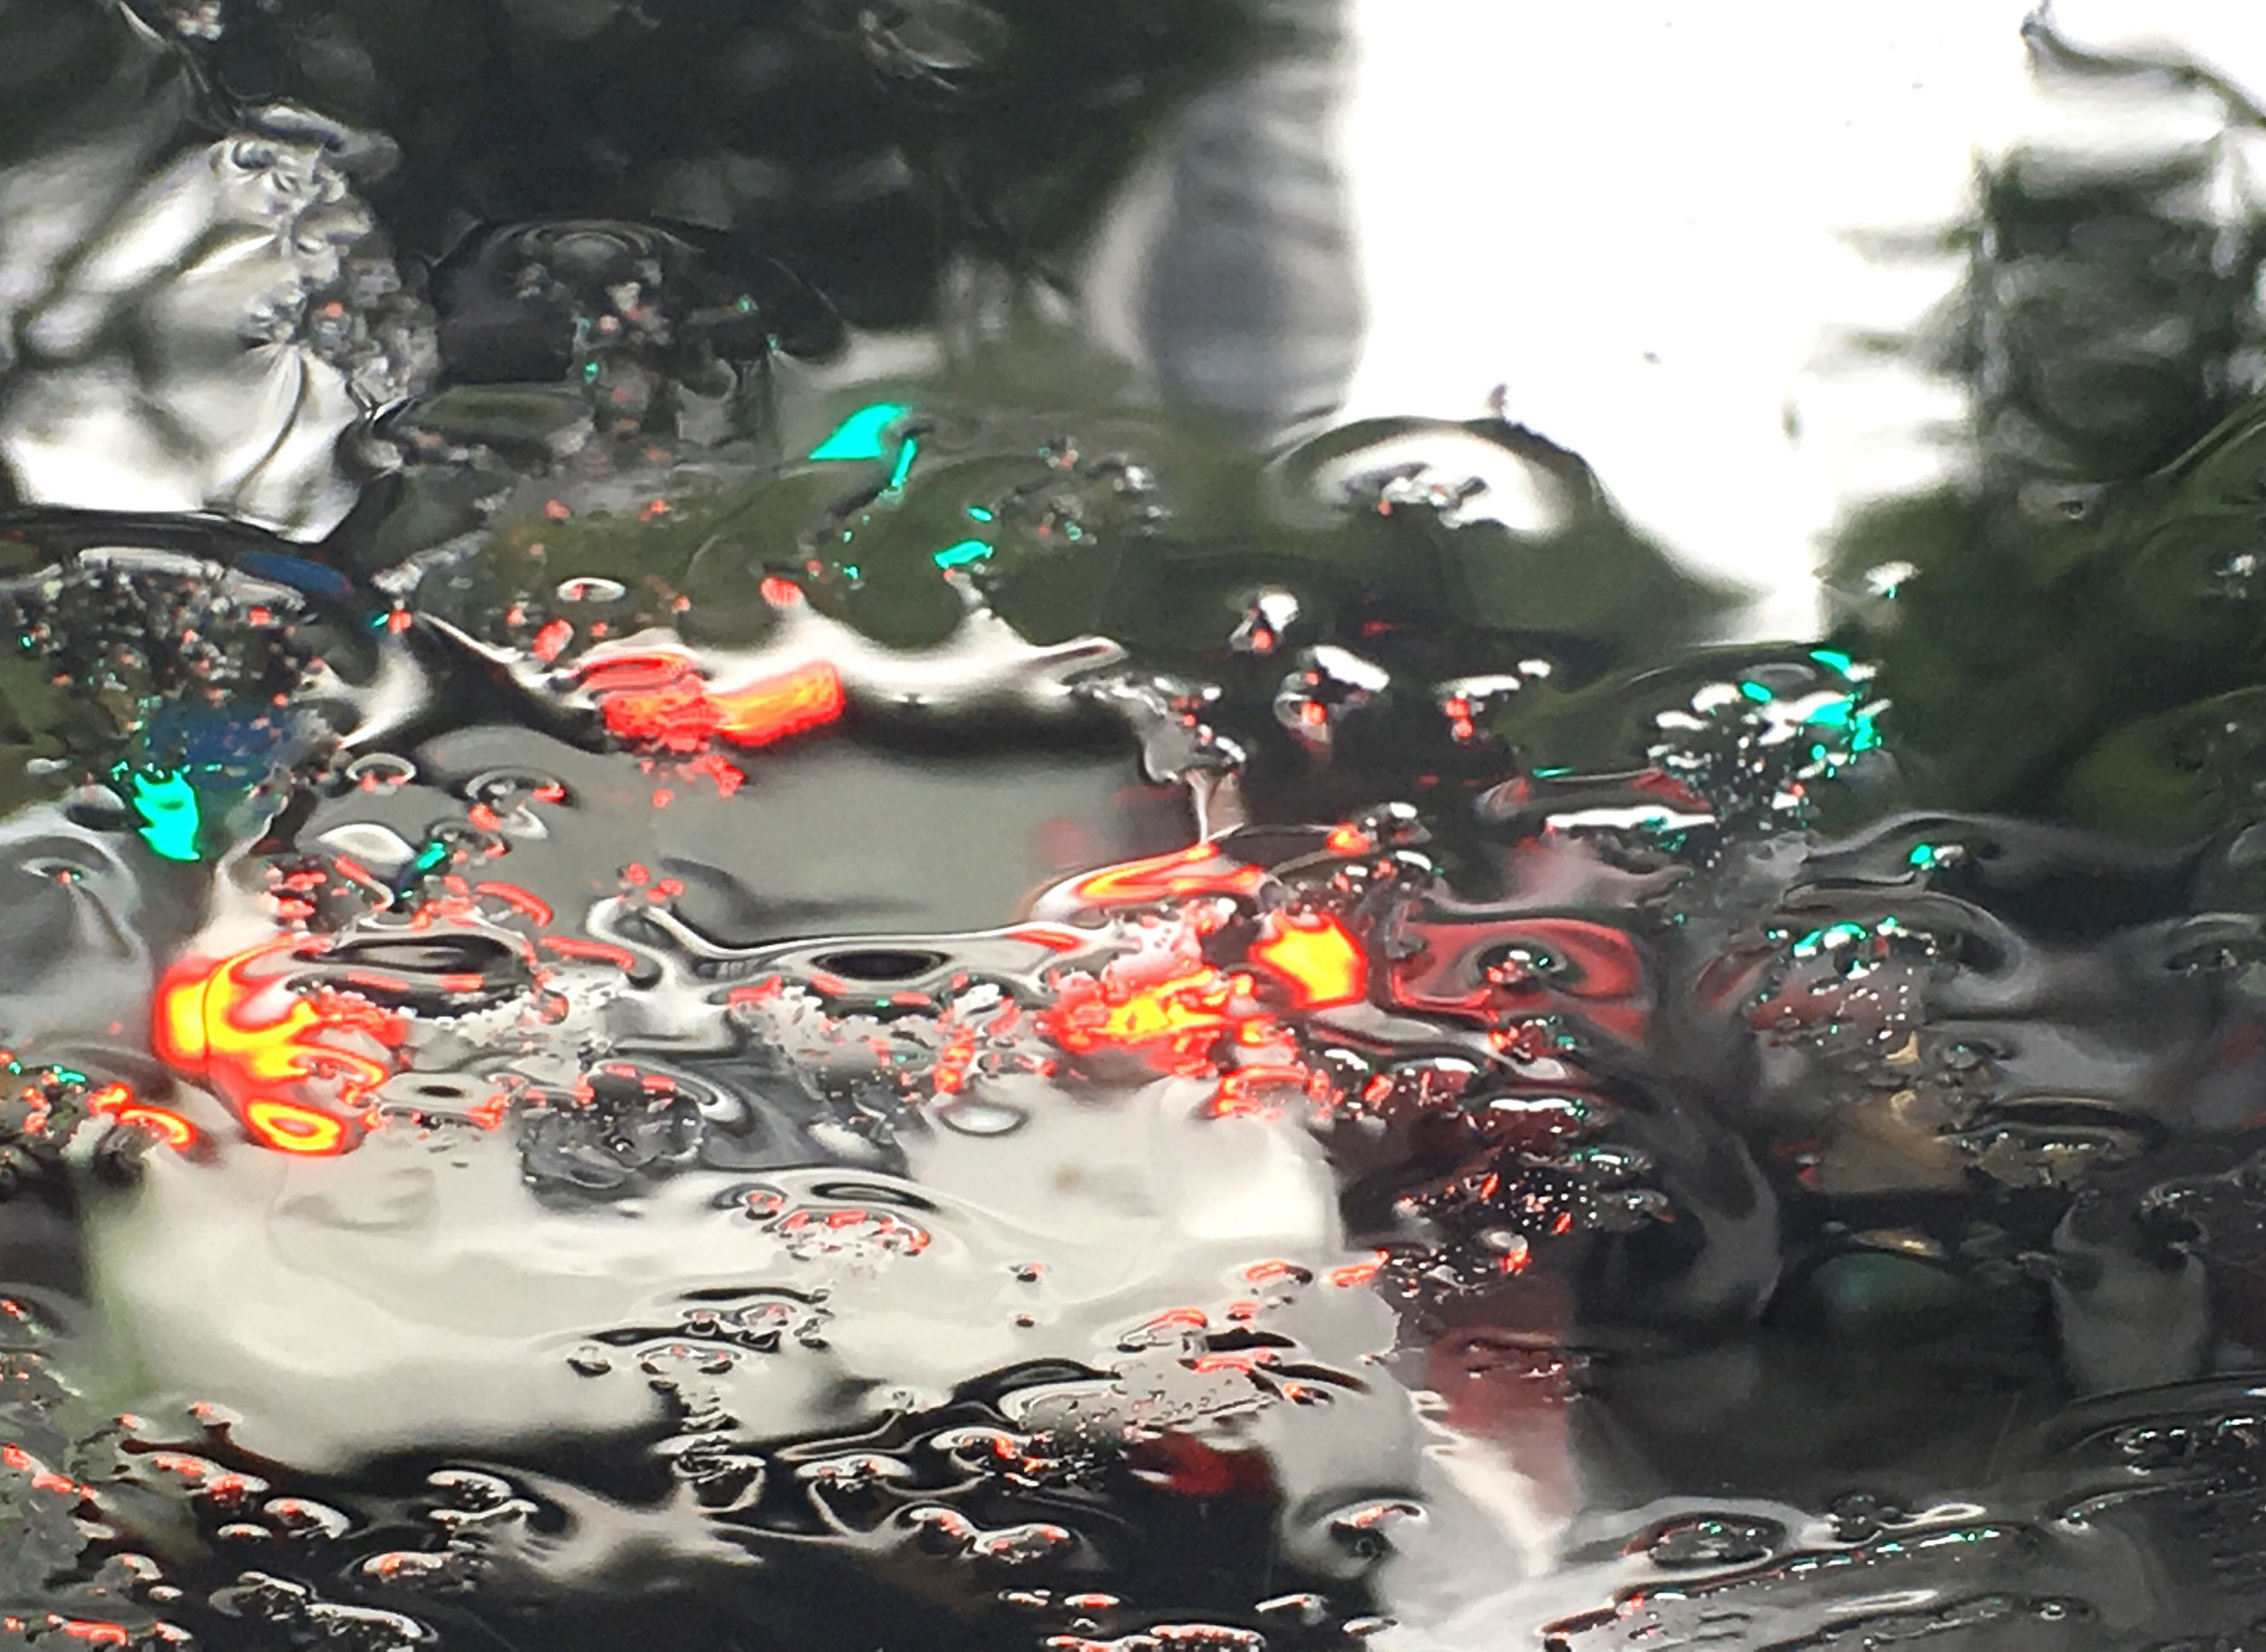 WEEK 2: Rain. 'Through The Rain' © Naida Ginnane 2018, iPhone 6s. This one was oodles of fun to shoot- apart from the fact that I was driving at the time- stopped at the lights, with the wipers off to capture the water patterns on the windscreen.